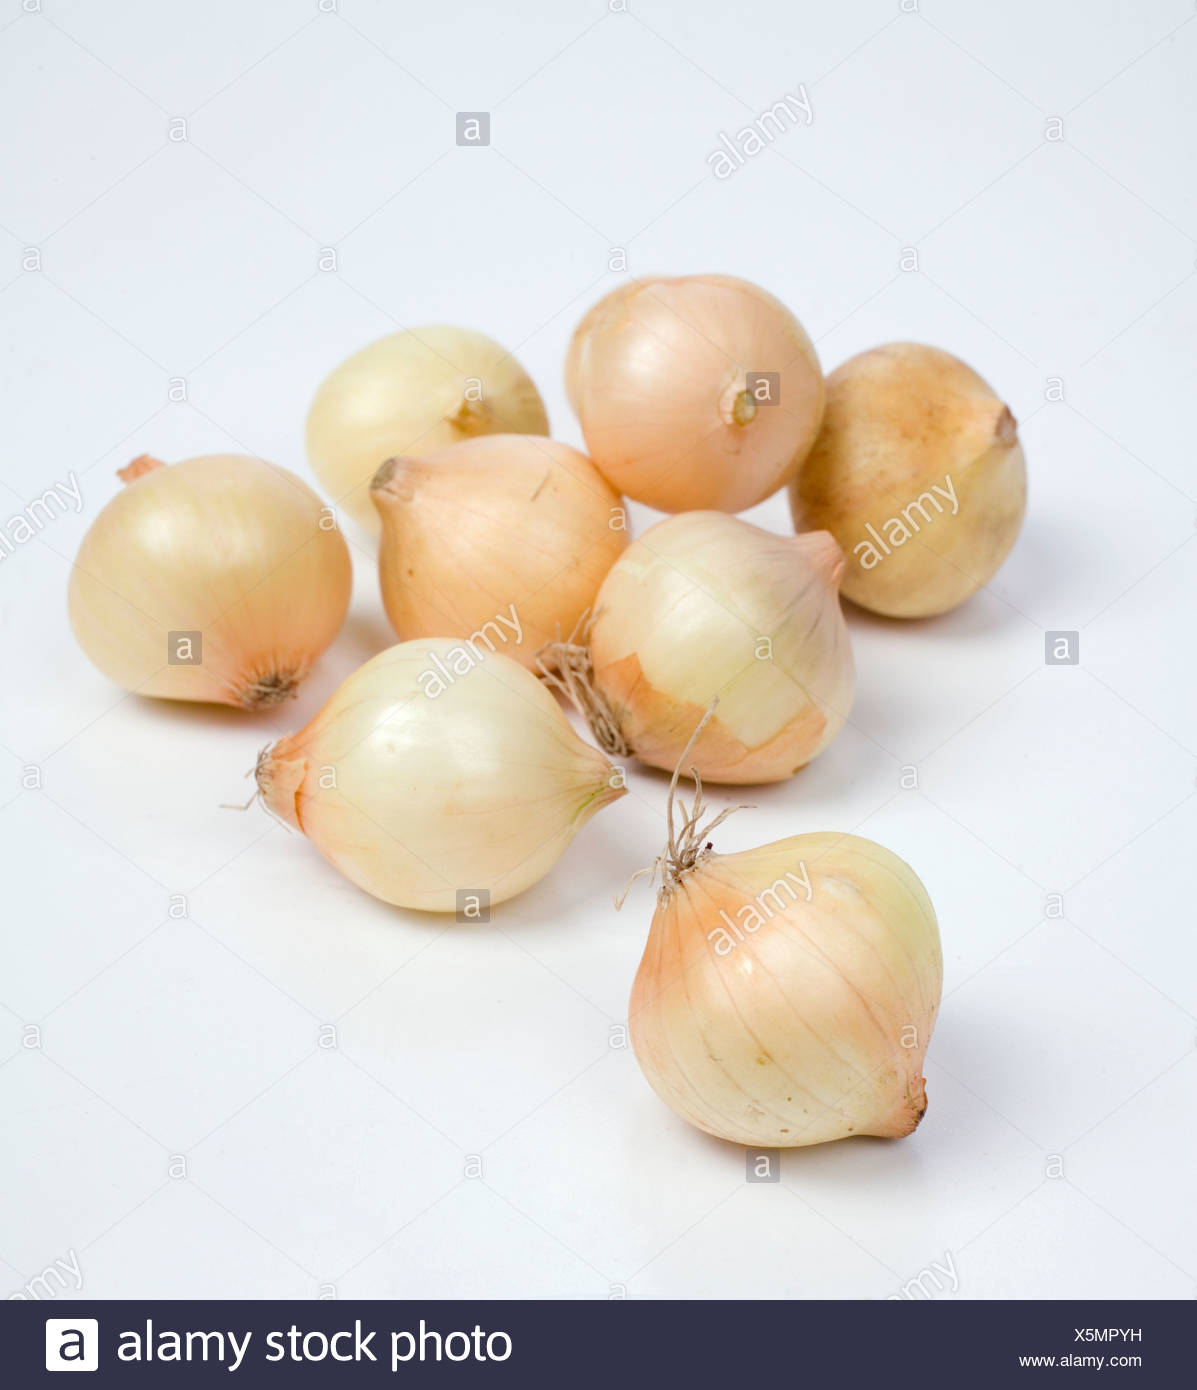 Pearl onions - Stock Image